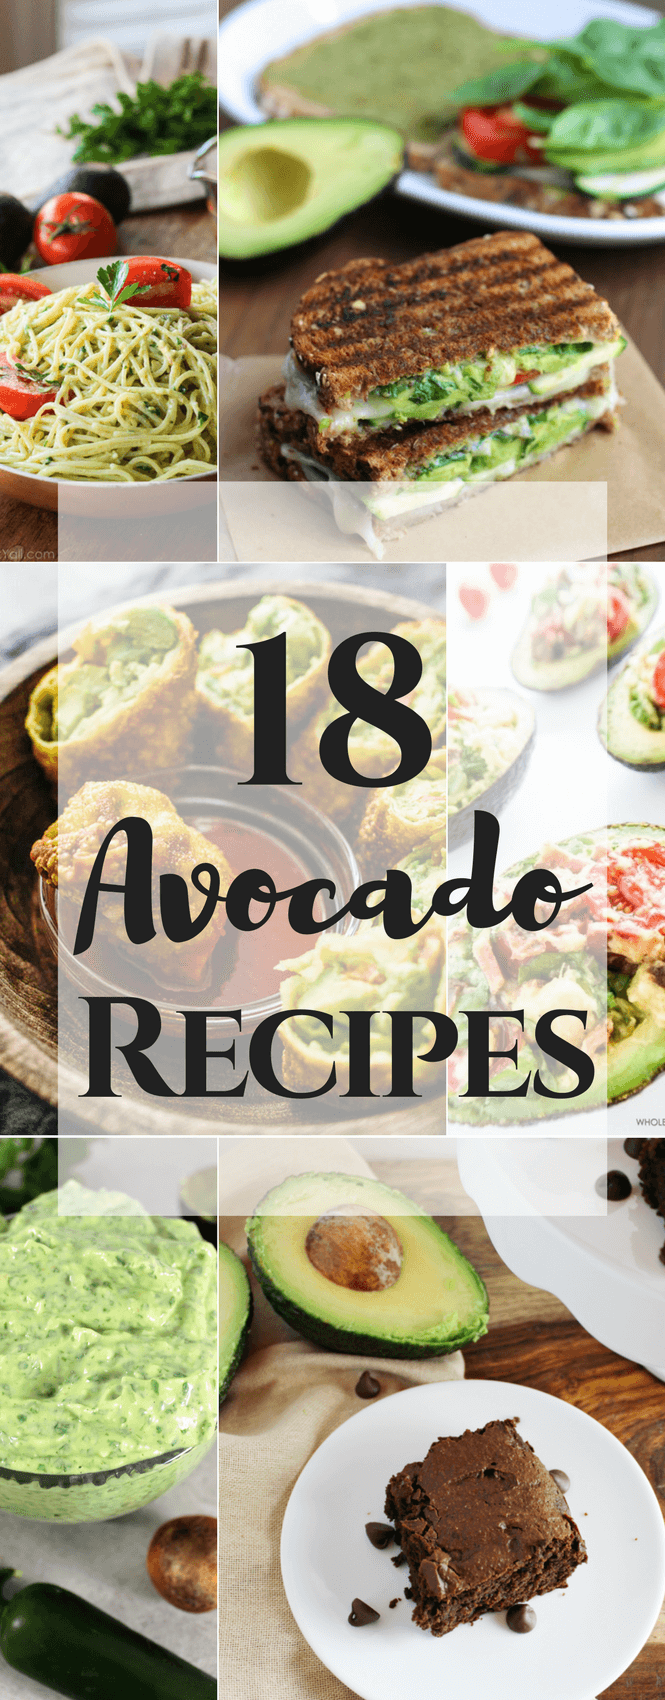 18 Avocado Recipes